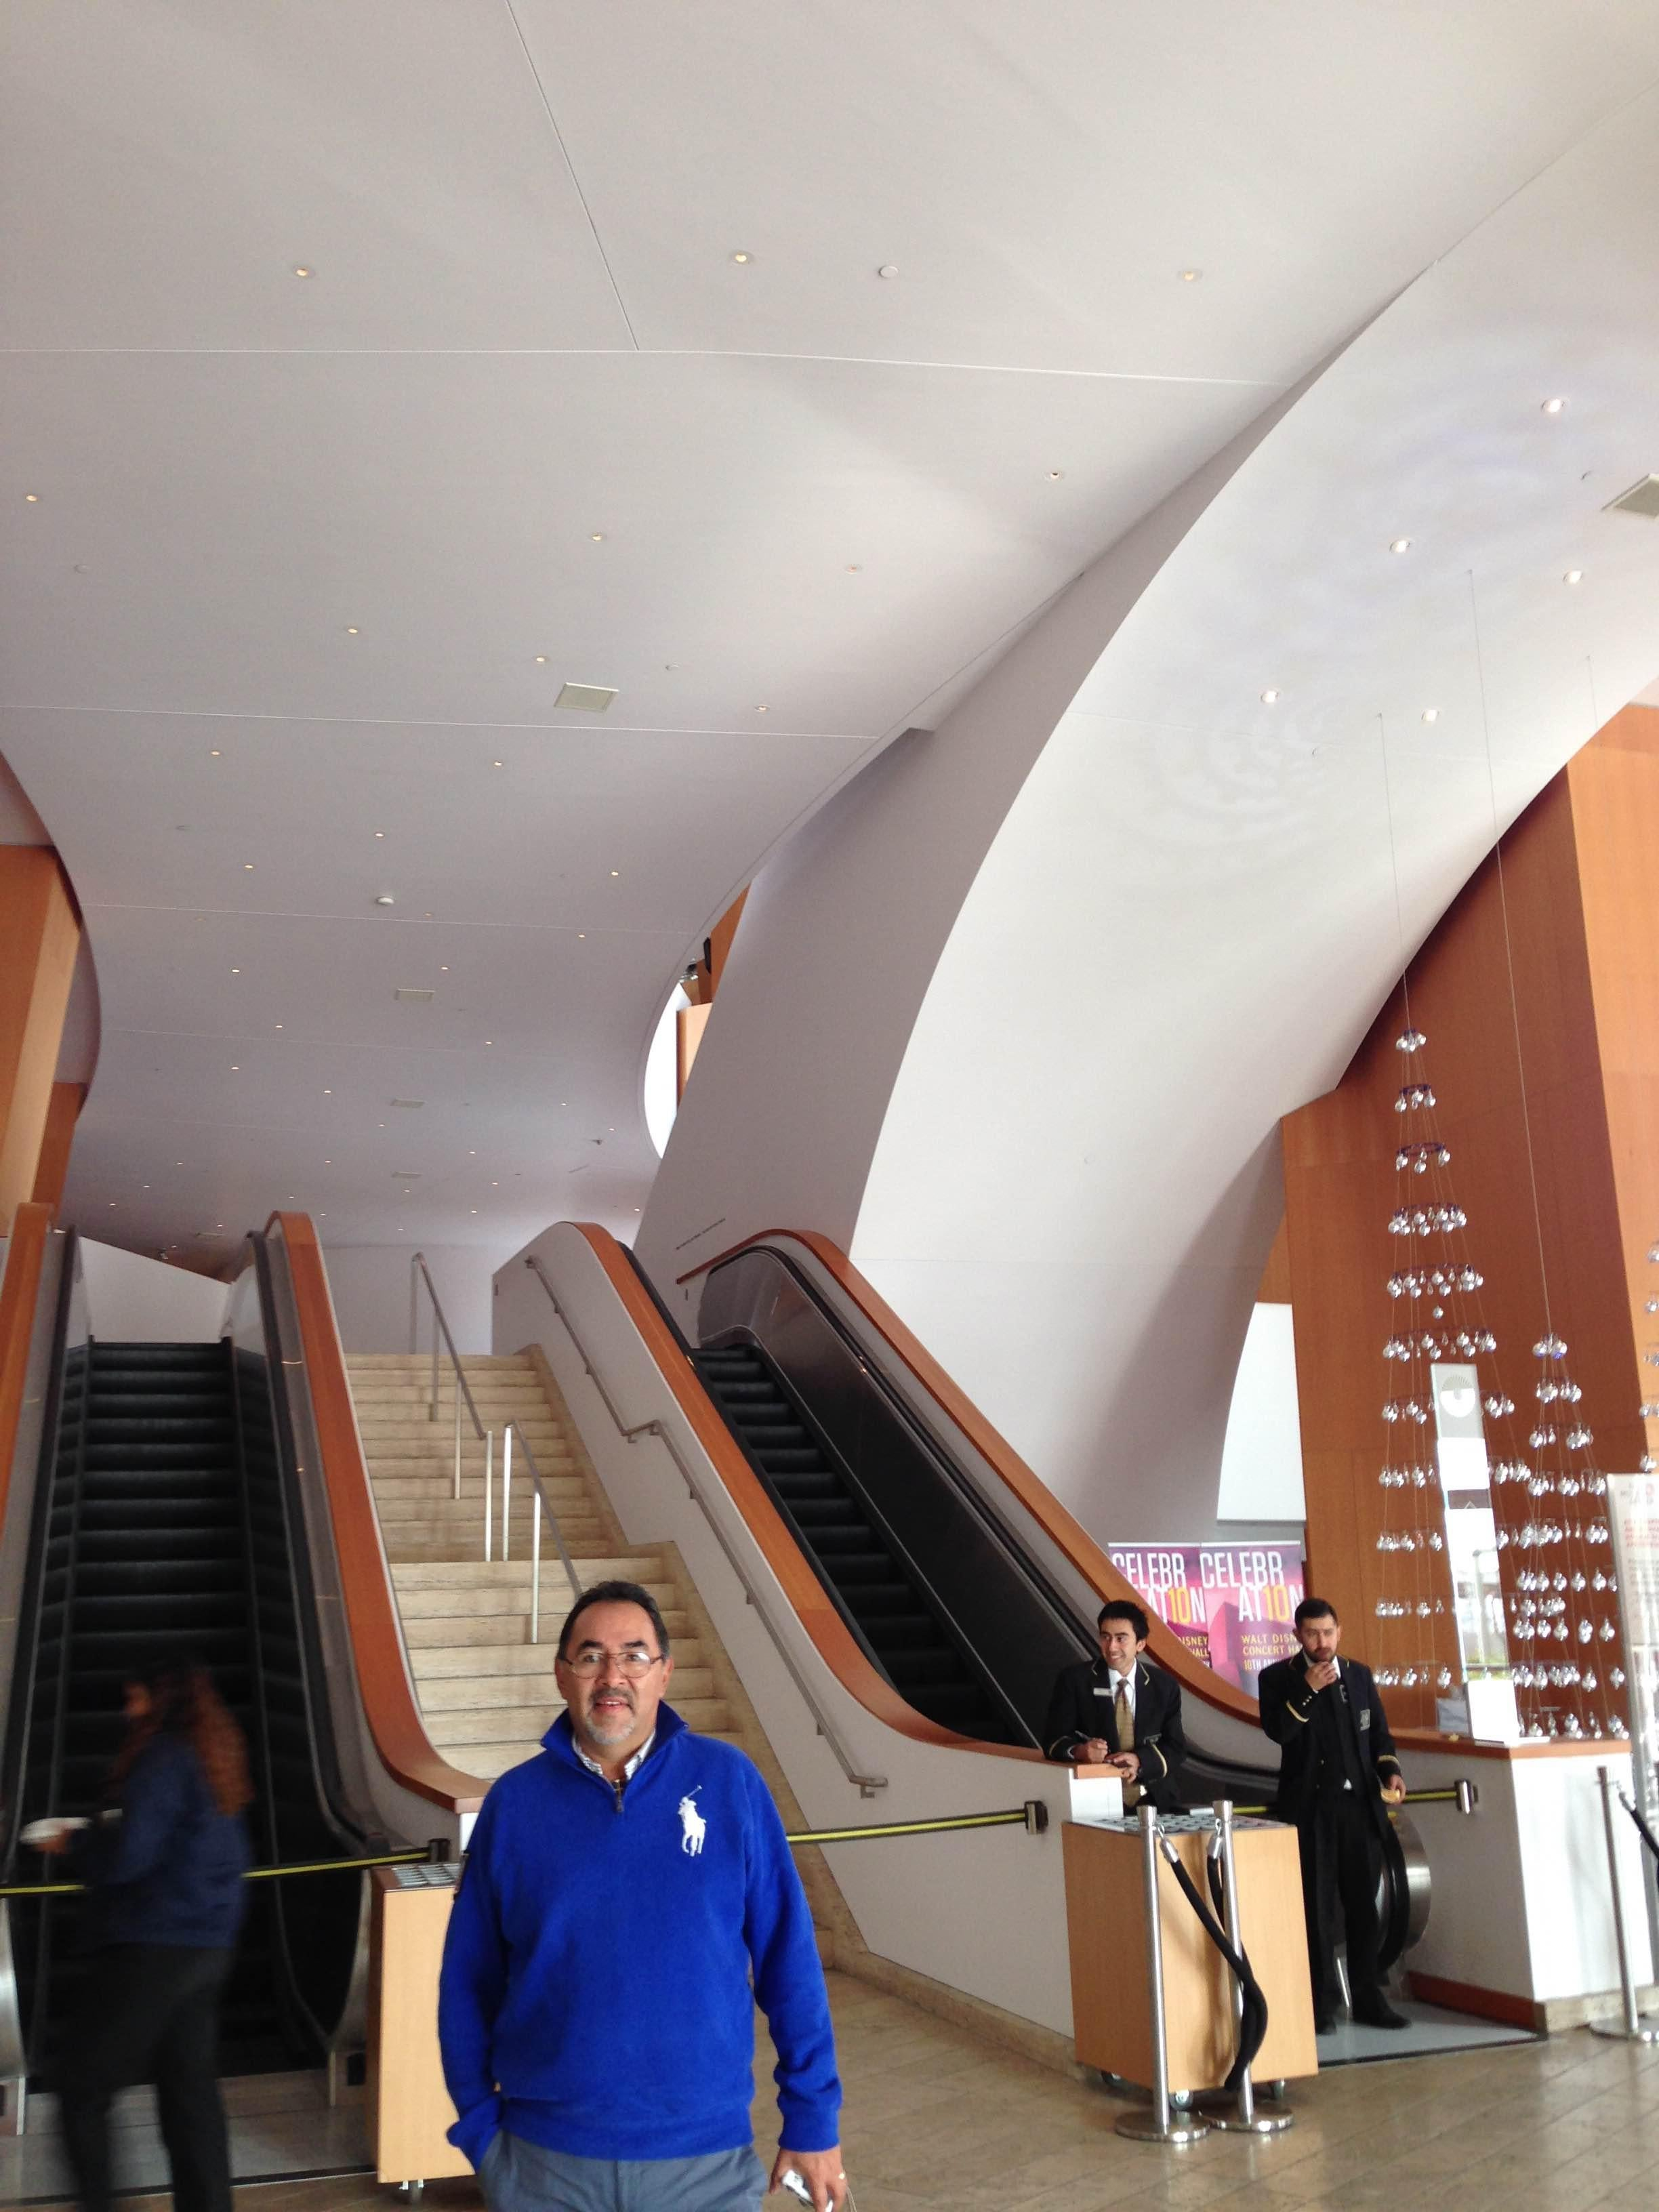 Auditorio en Walt Disney concert hall